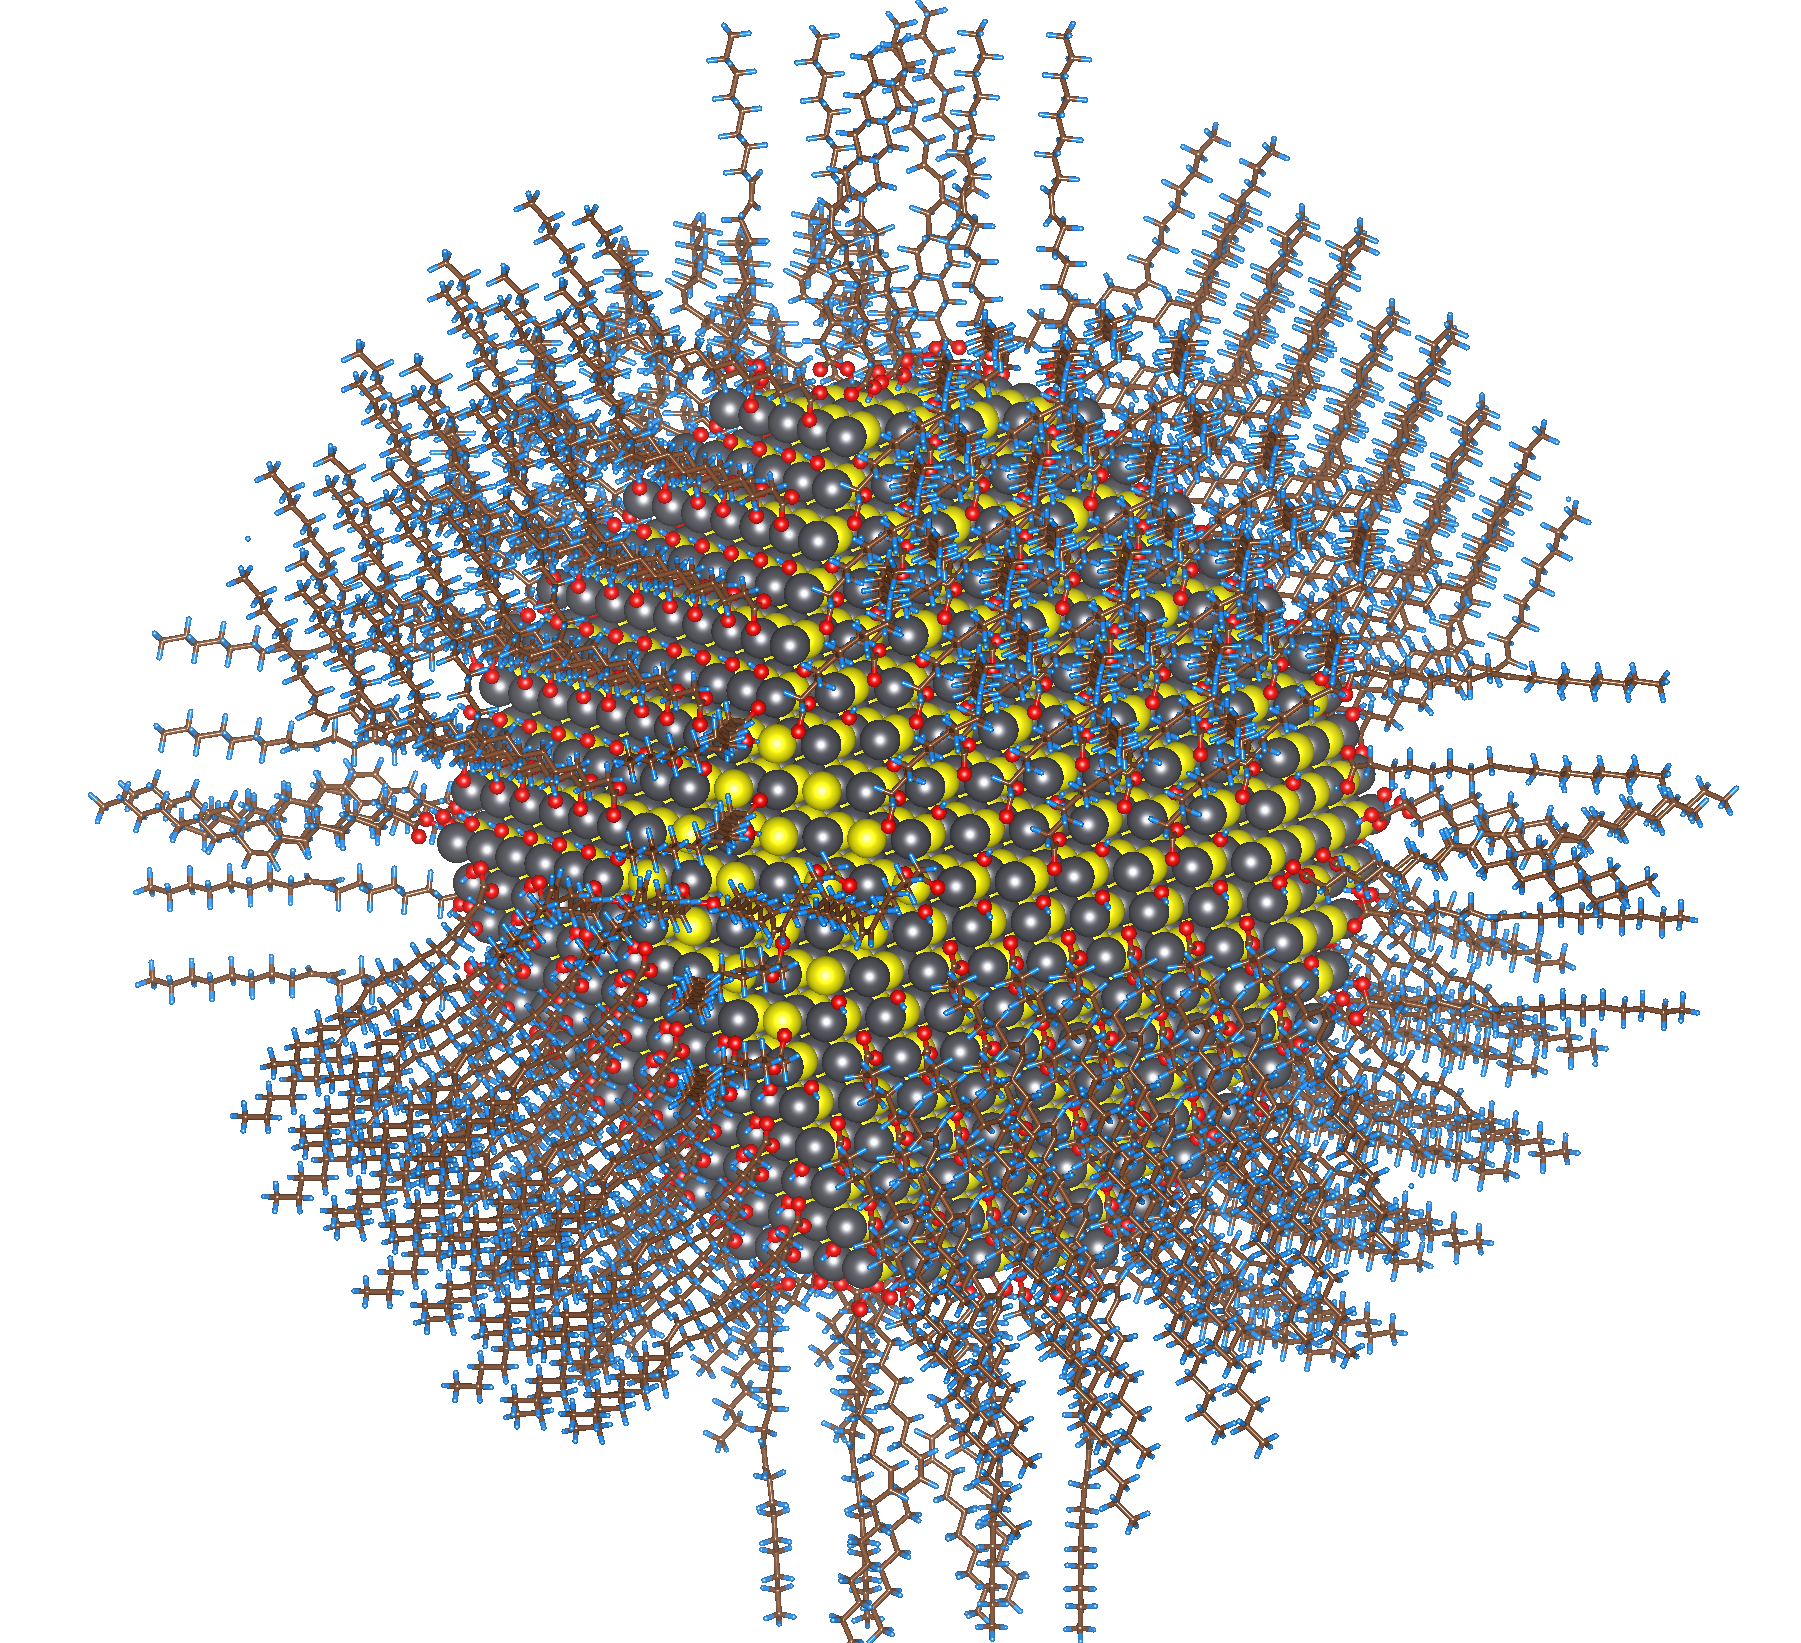 Colloidal_nanoparticle_of_lead_sulfide_(selenide)_with_complete_passivation